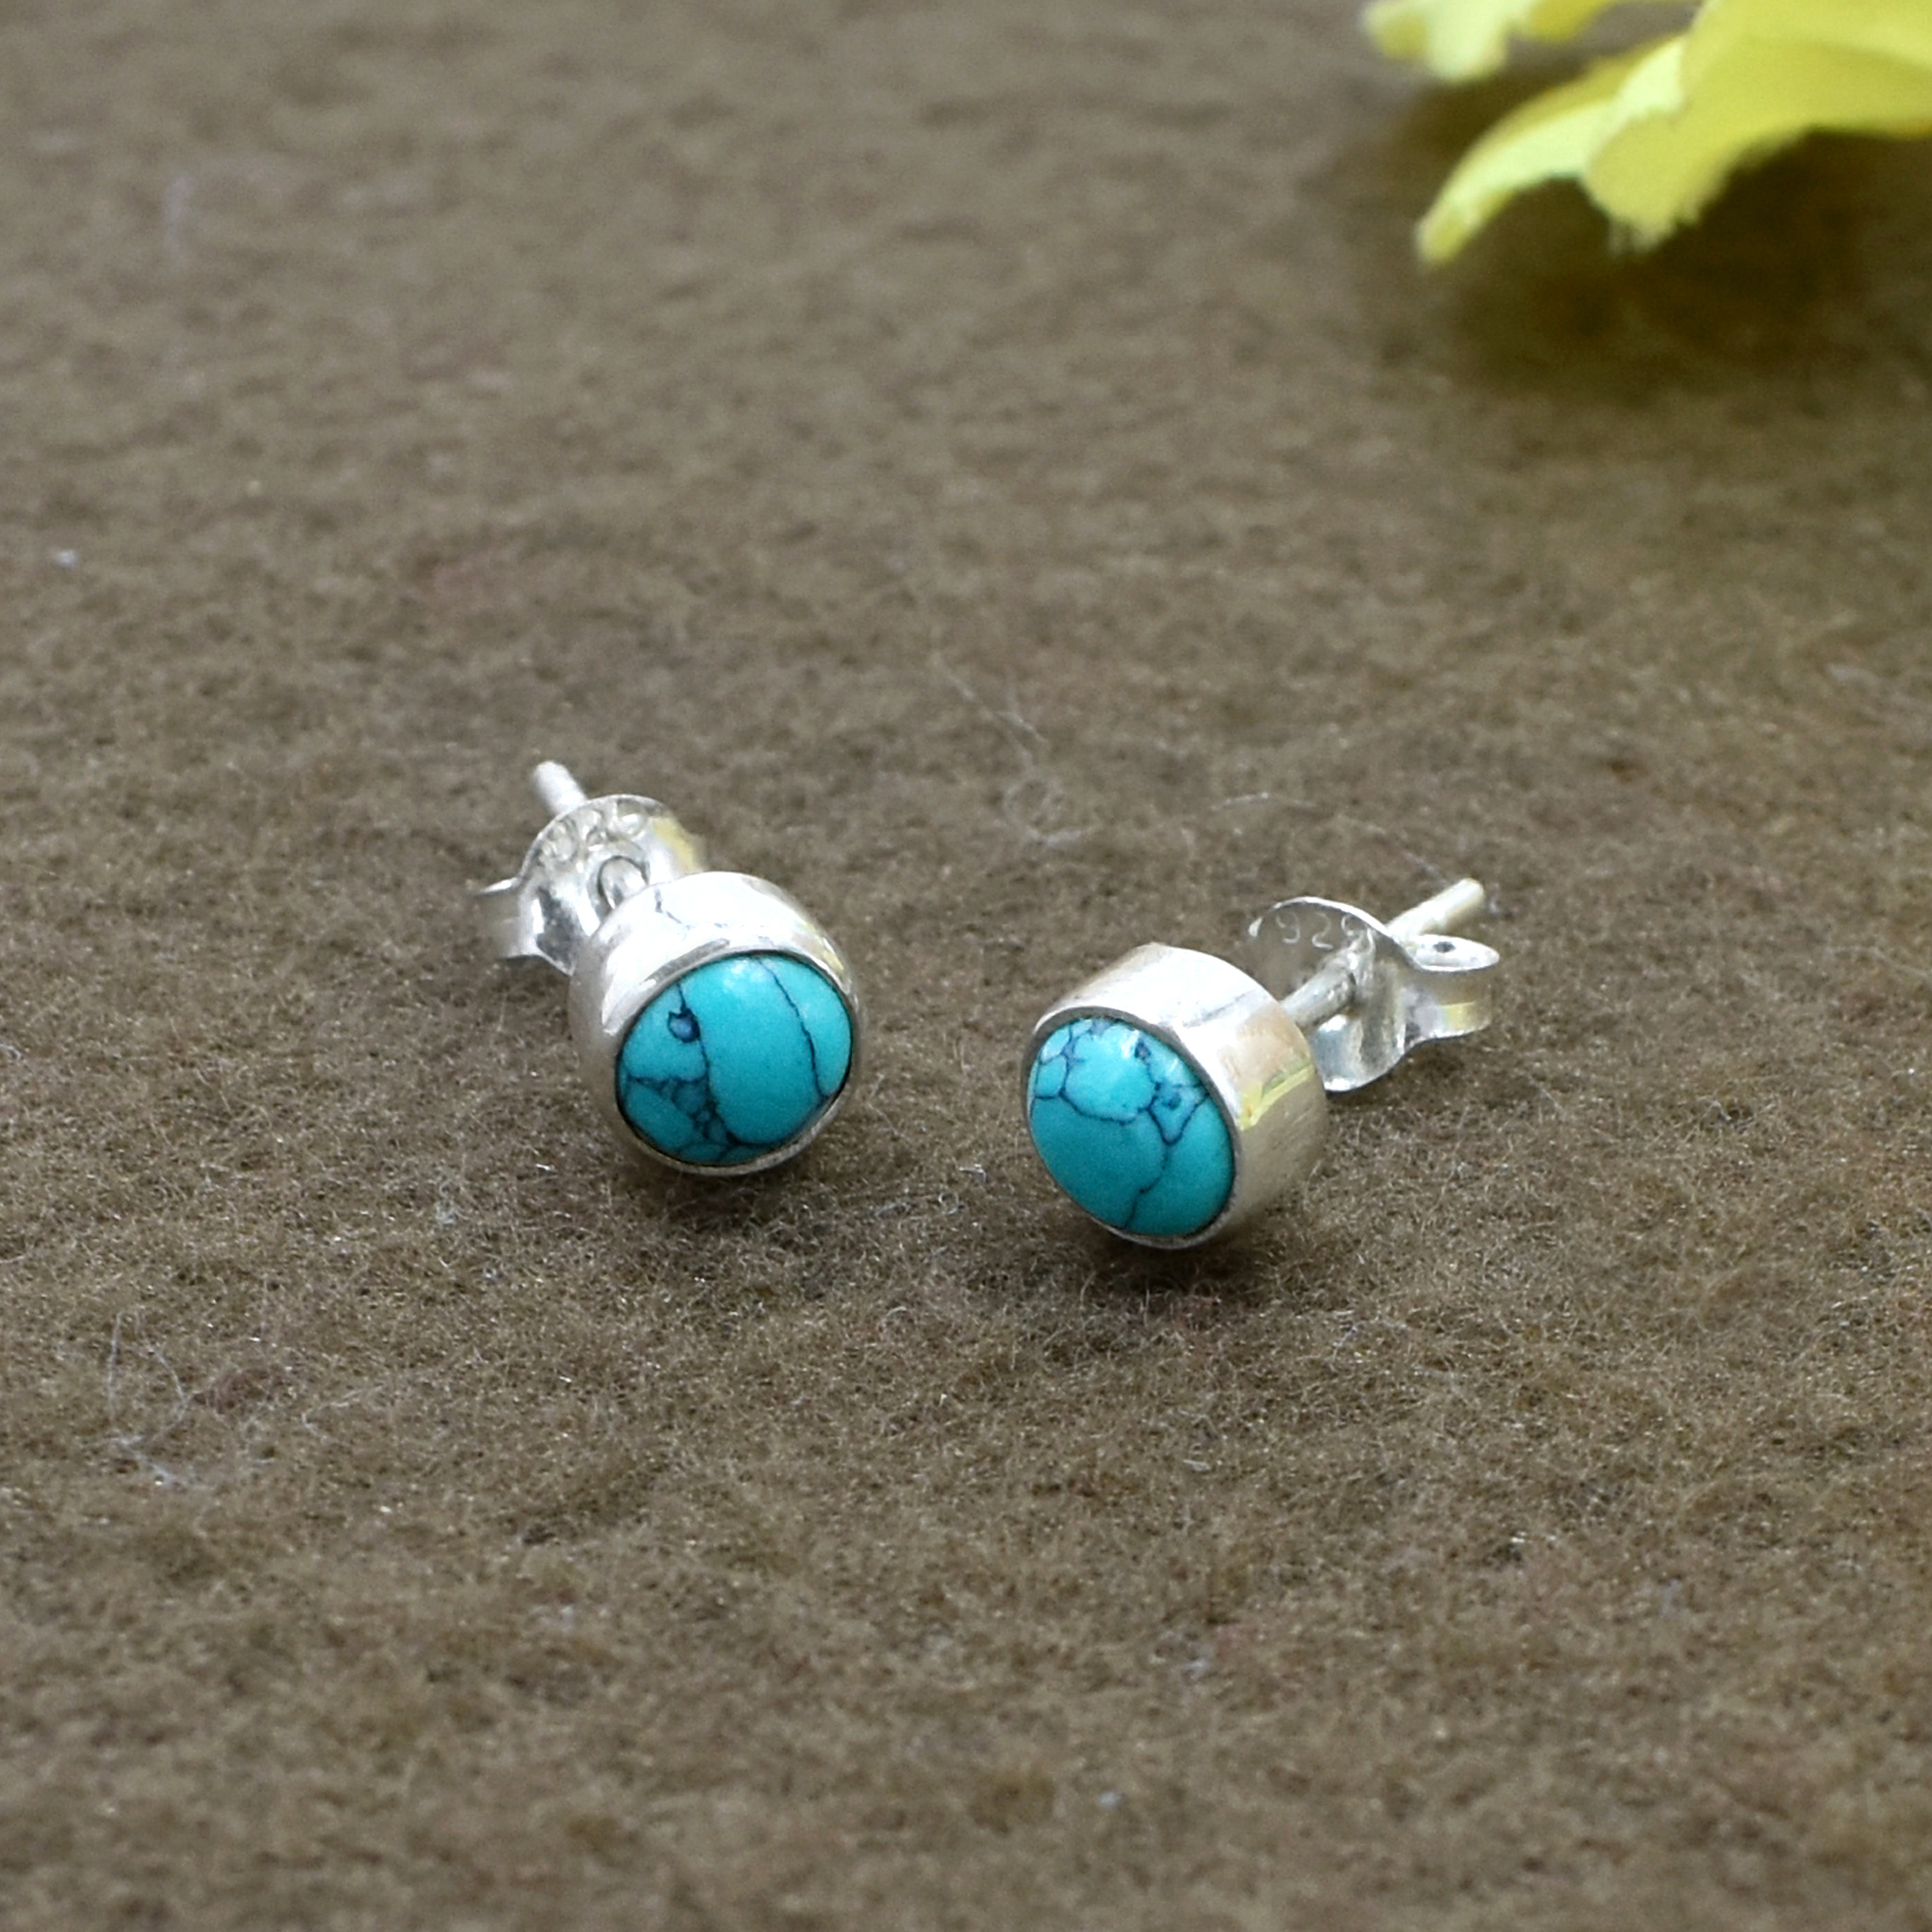 Attractive Turquoise Round Gemstone 925 Sterling Silver Post Stud Earring For women & Girls